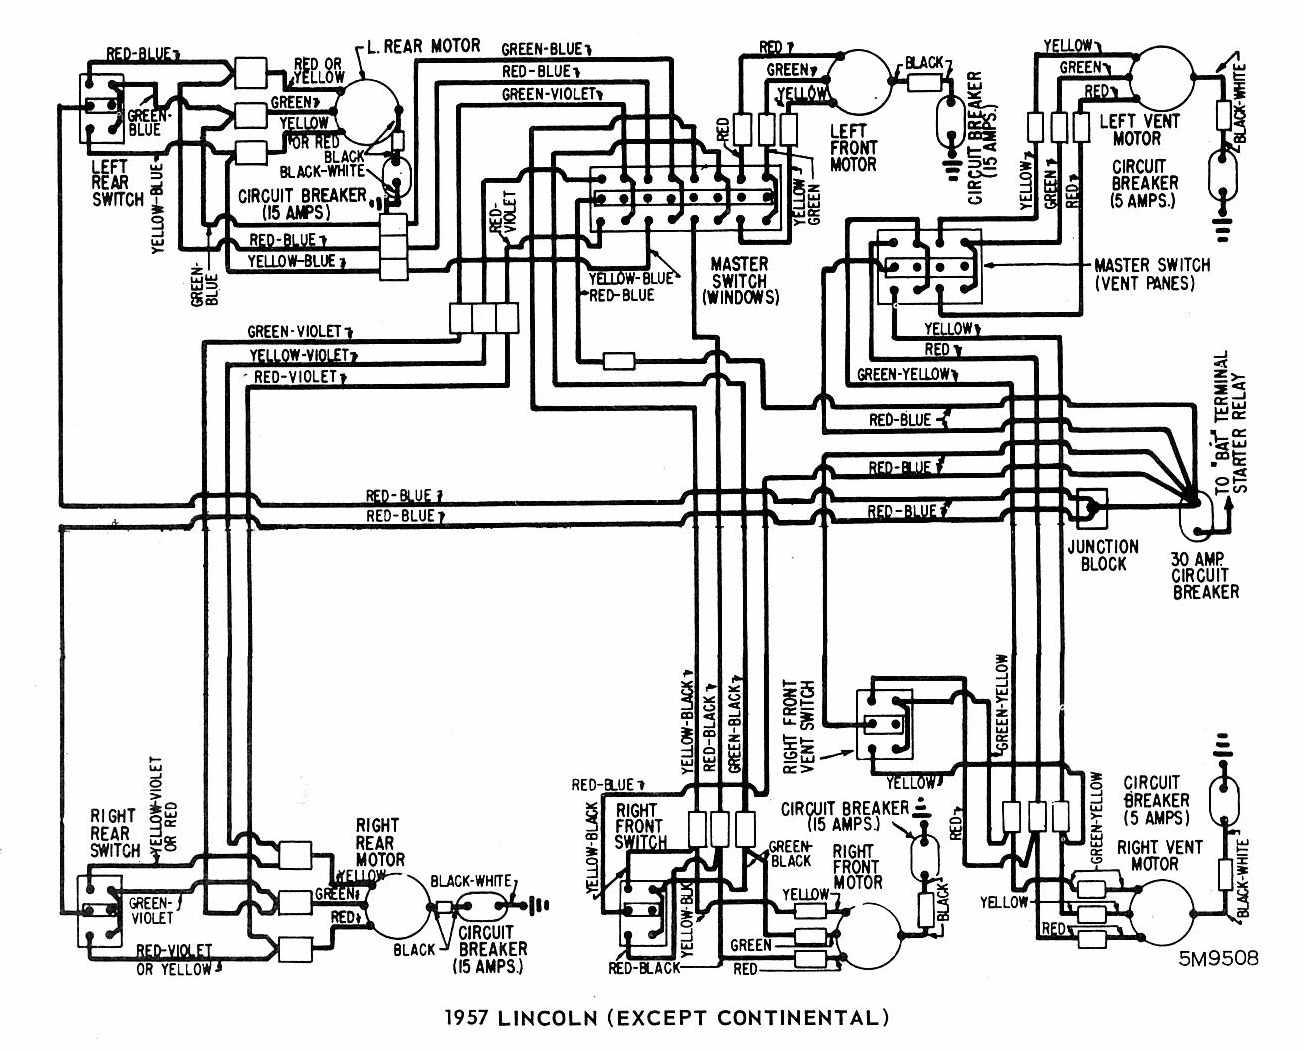 DIAGRAM] 2007 Tahoe Z71 Under Hood Wiring Diagram FULL Version HD Quality Wiring  Diagram - CRONESMPDF.ARTEMISMAIL.FRcronesmpdf.artemismail.fr